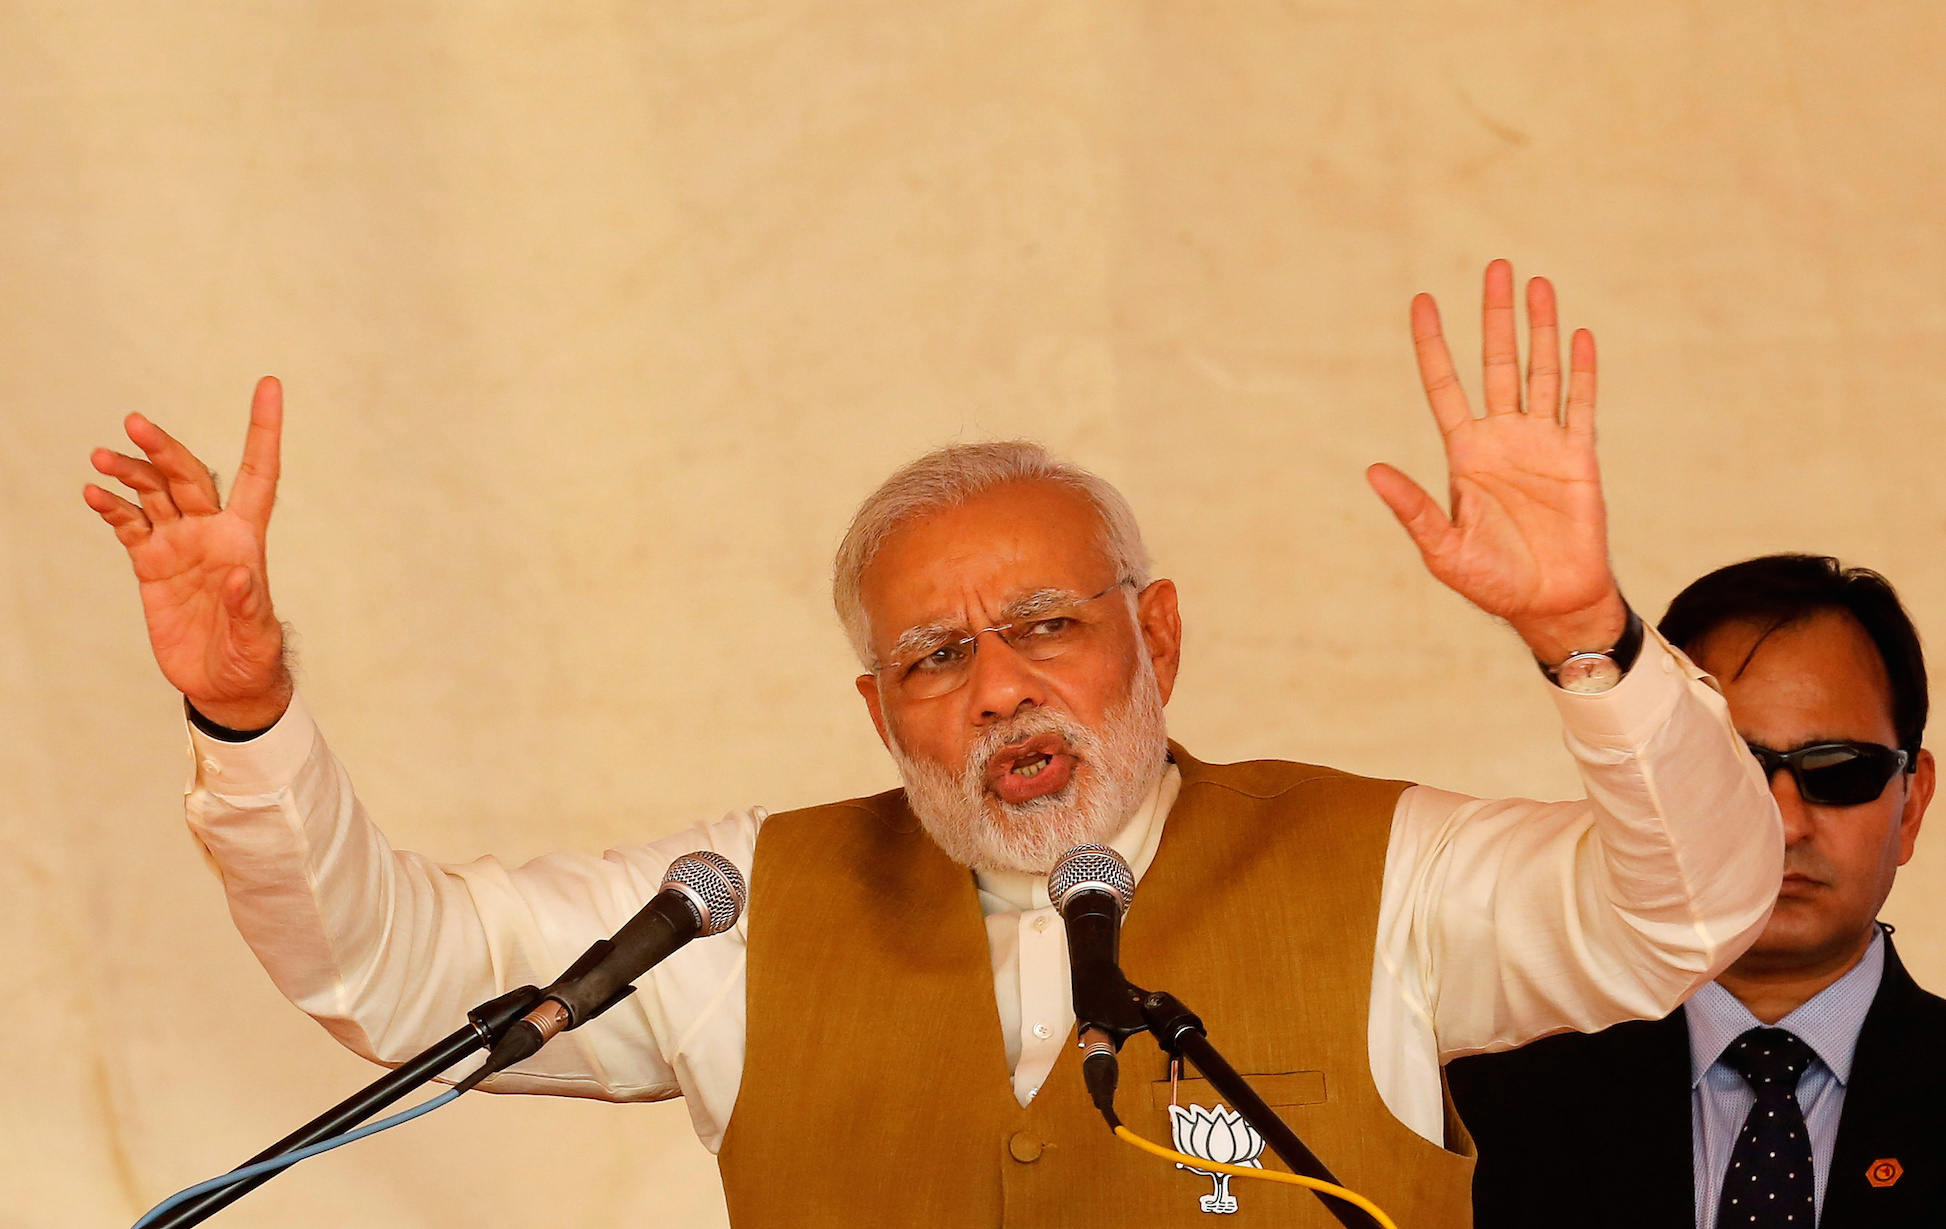 Prime Minister Narendra Modi addressing a gathering in Kalol in Gandhinagar district. Photo credit: REUTERS/Amit Dave